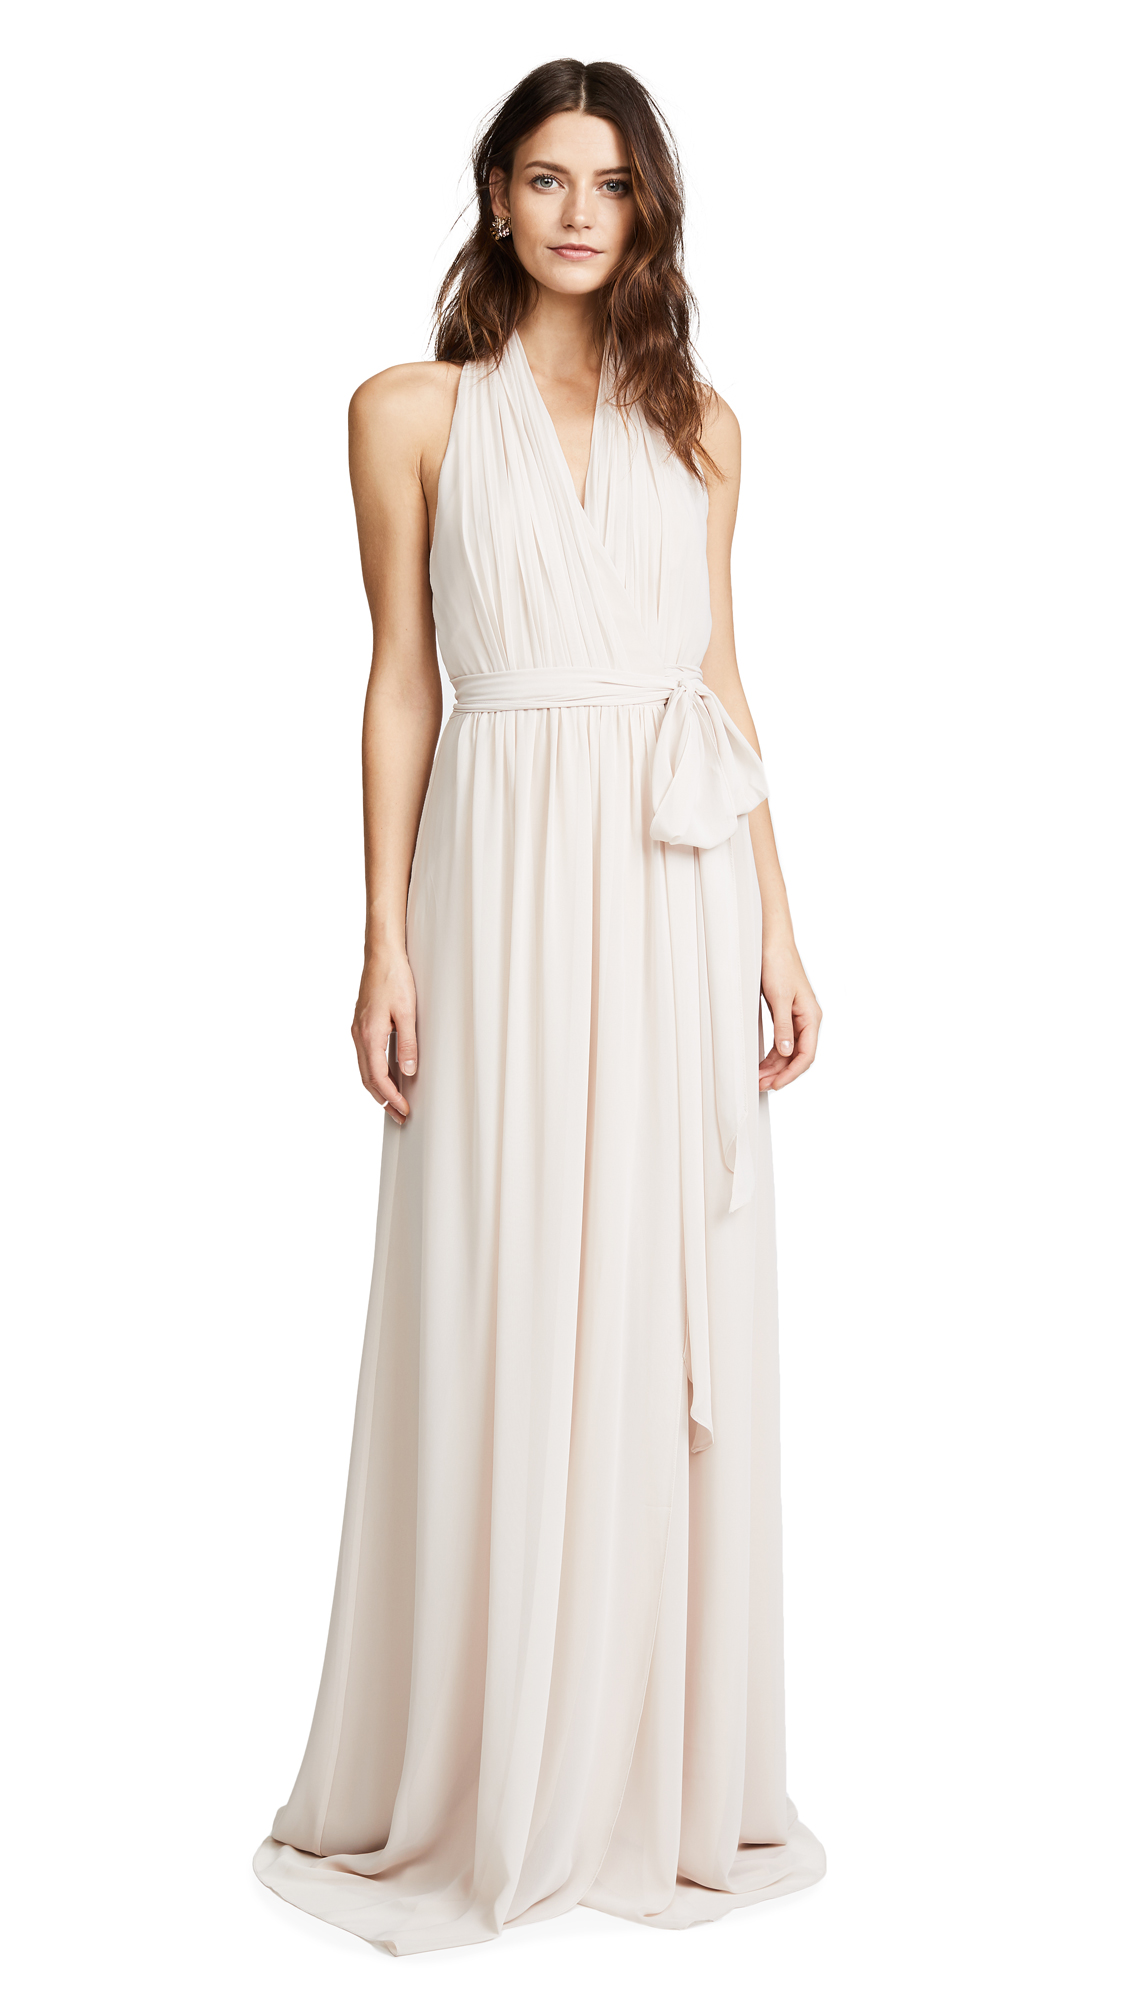 Joanna August Amber Halter Wrap Dress - All TomorrowS Parties